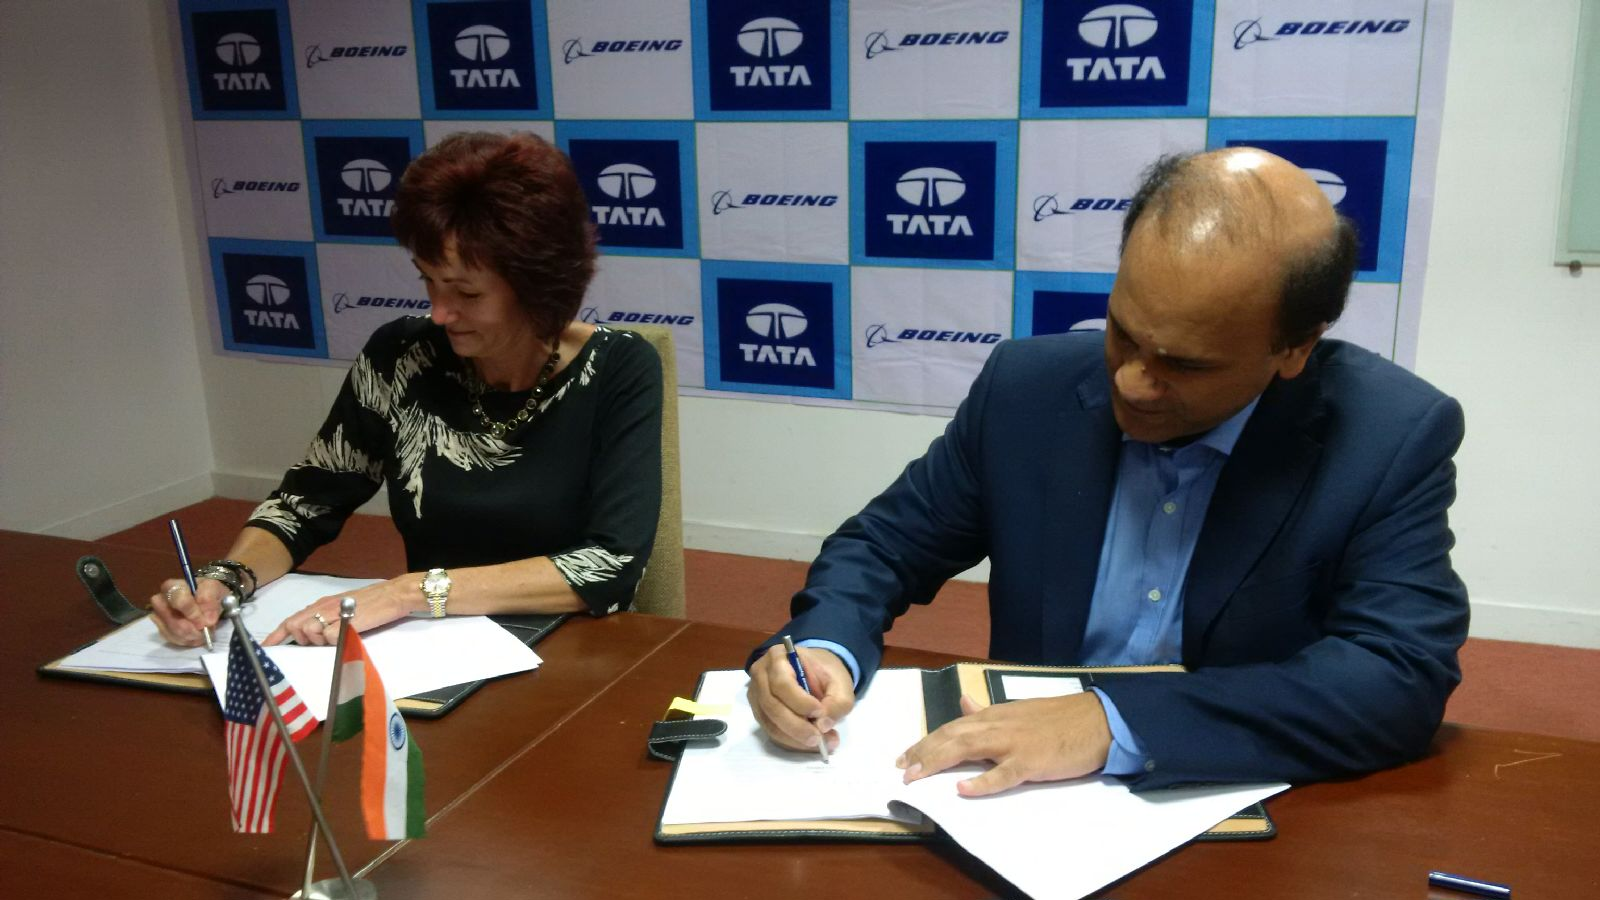 Boeing, Tata sign agreement to manufacture aerospace parts in India